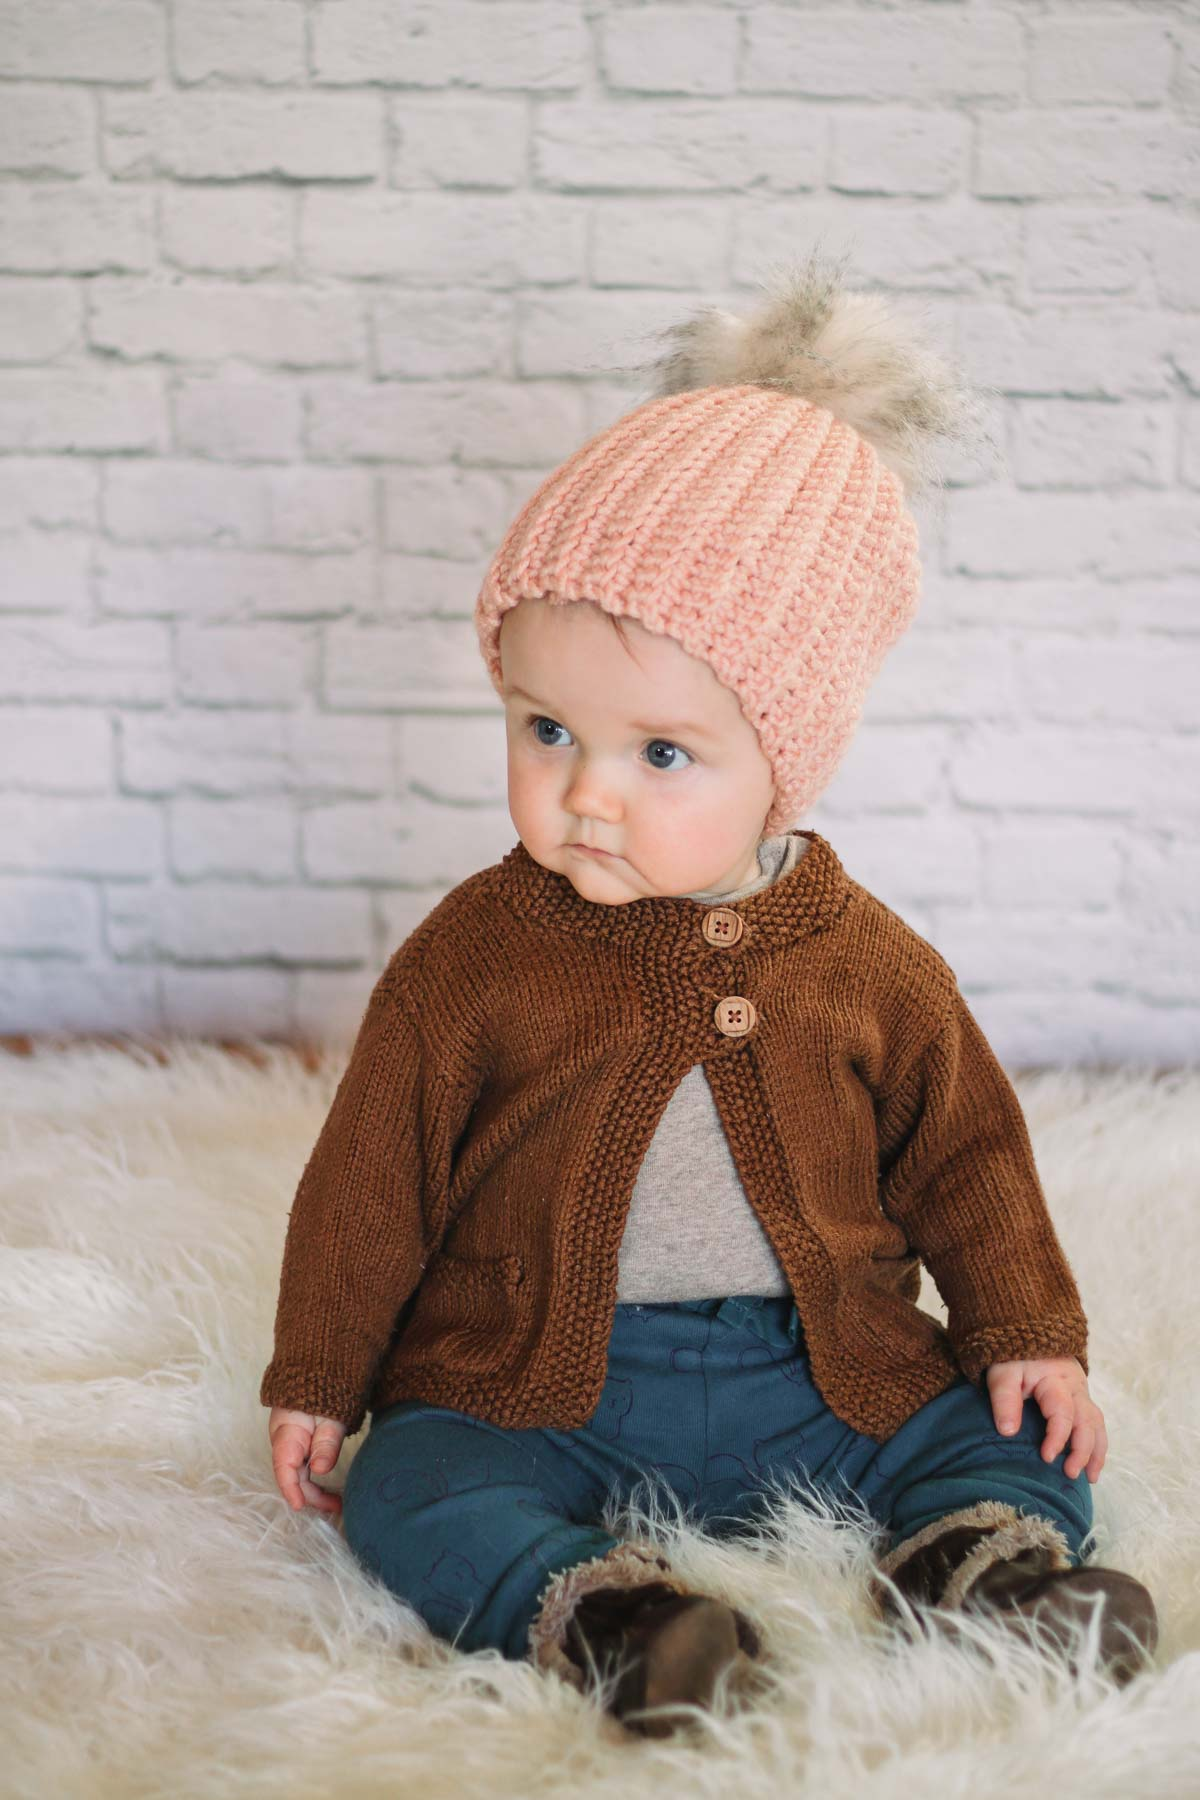 Young baby wearing a handmade crochet hat with a fur pom pom on top.